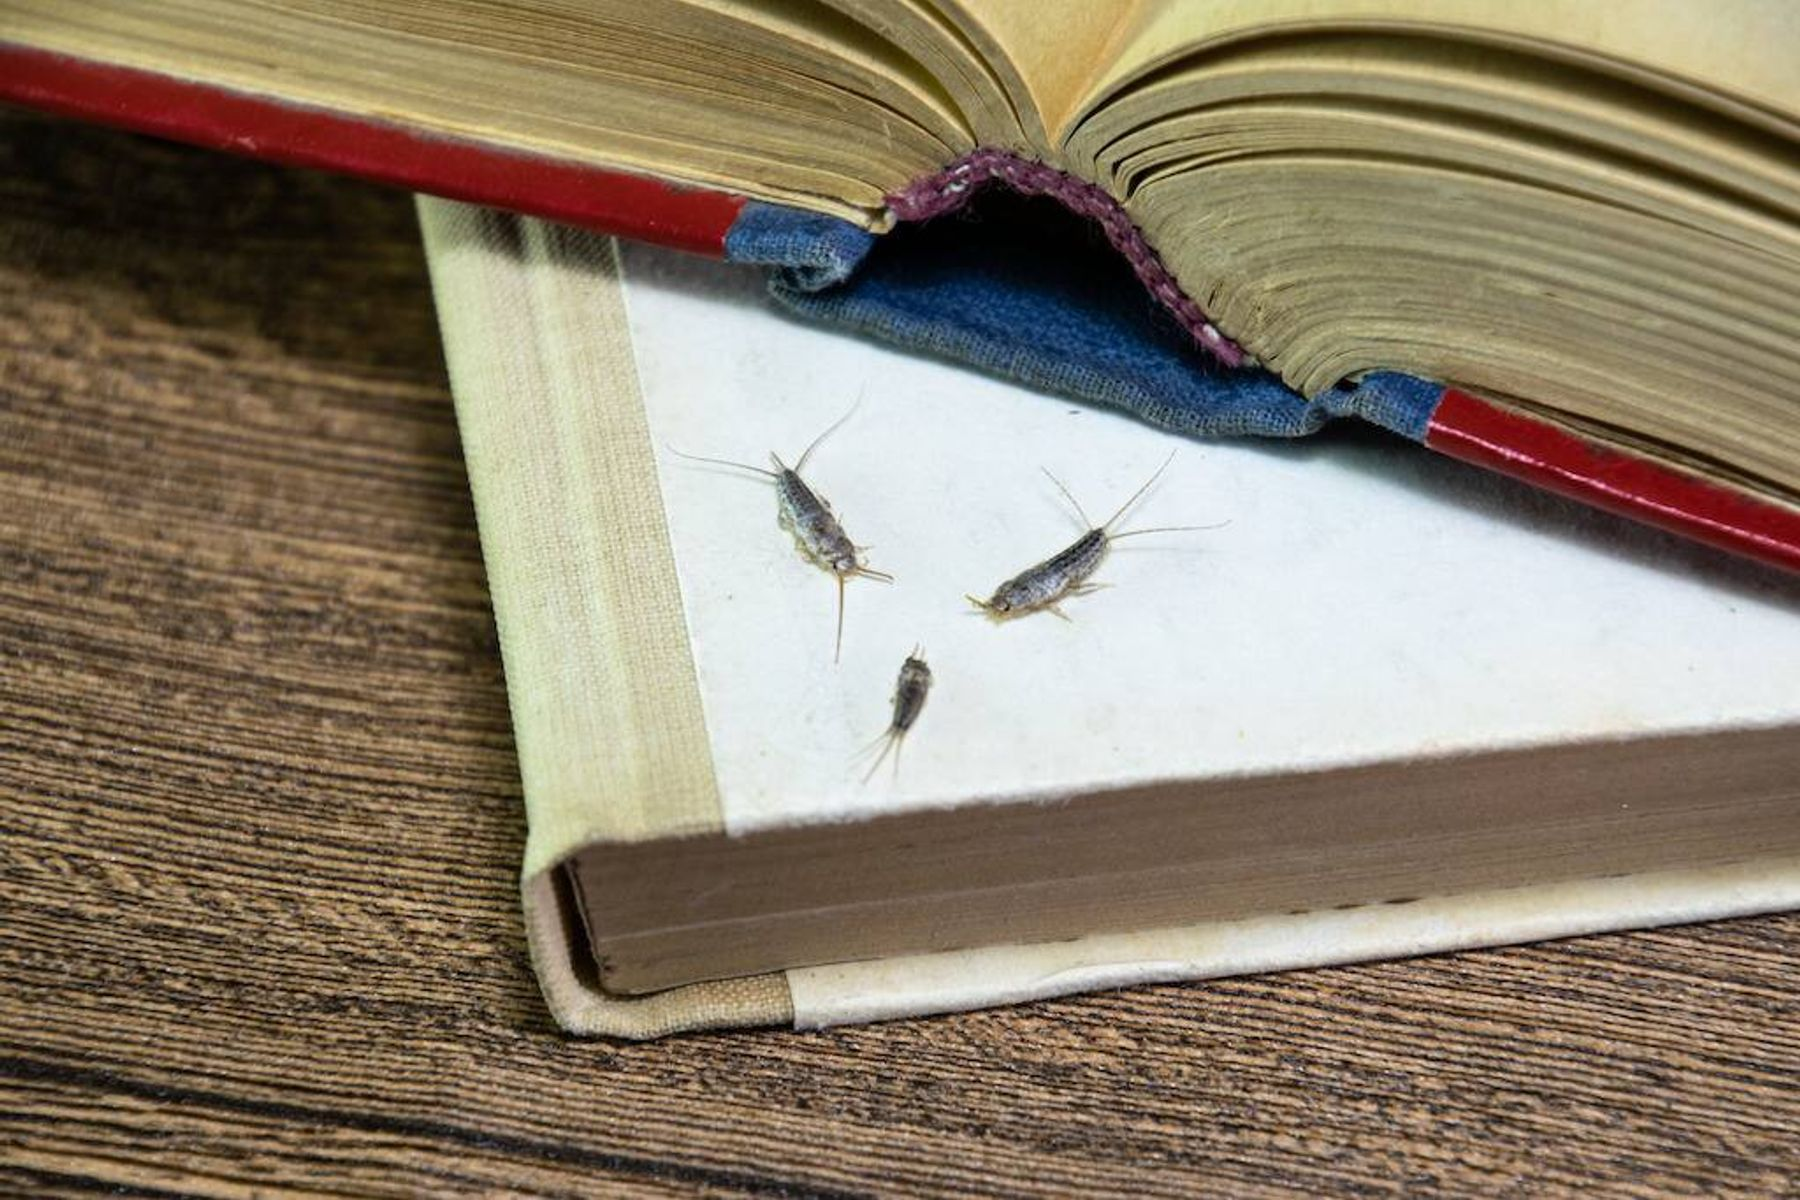 silverfish on a pile of books